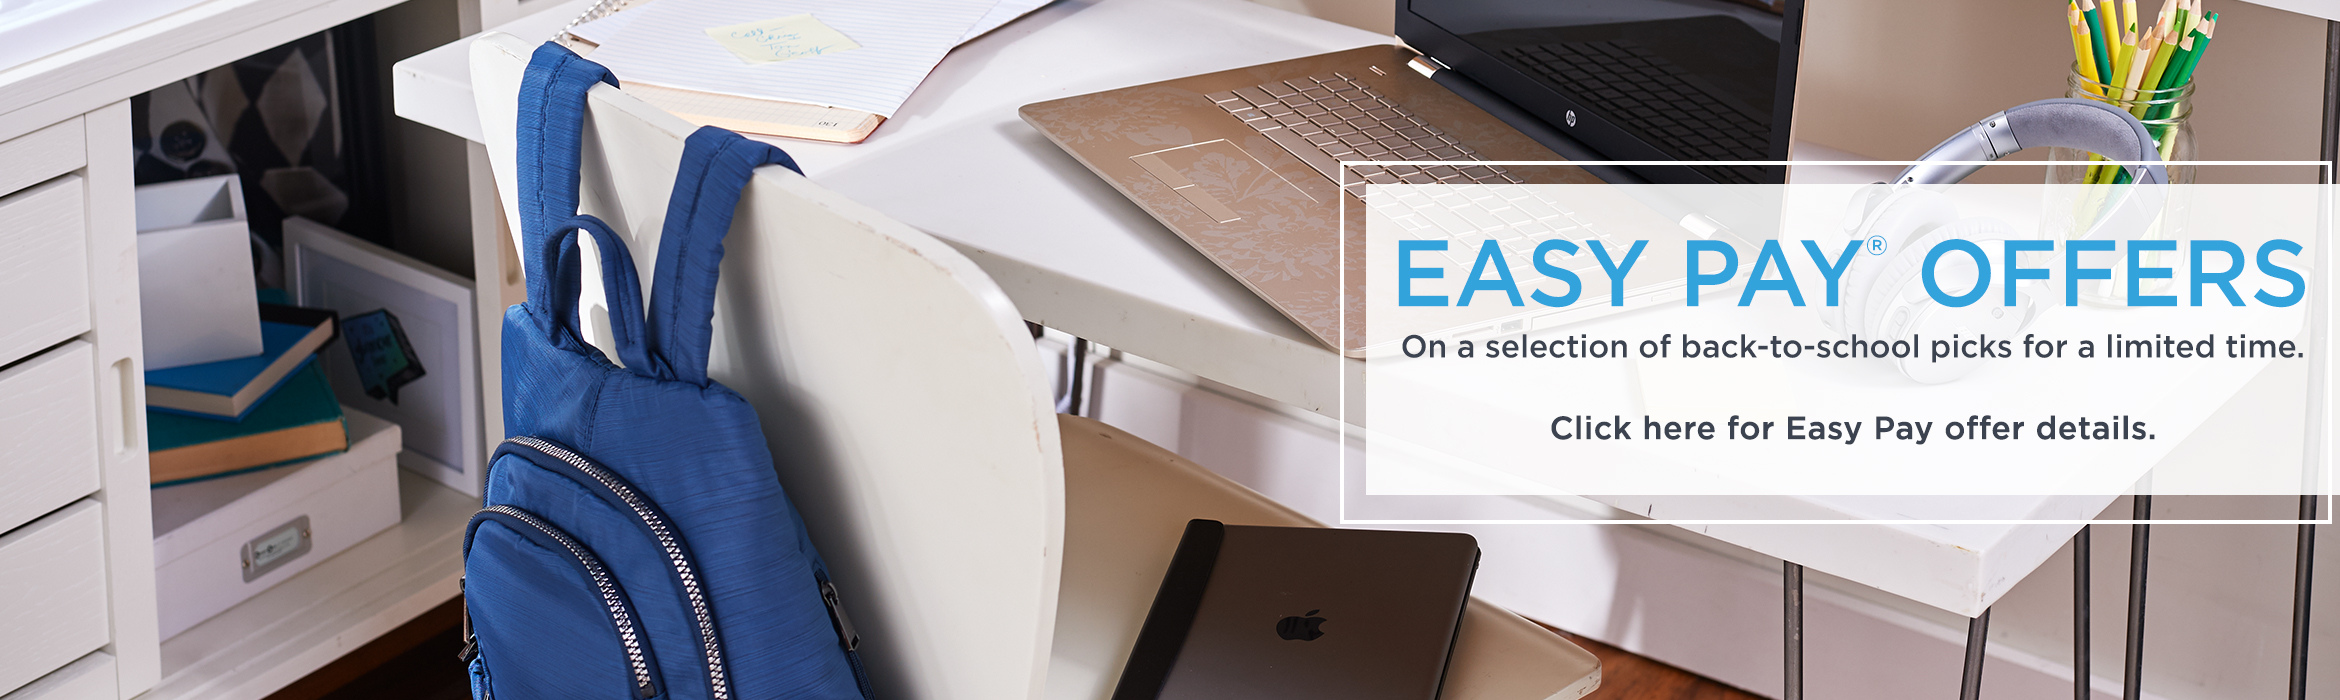 Easy Pay® Offers.  On a selection of back-to-school picks for a limited time.  Click here for Easy Pay offer details.